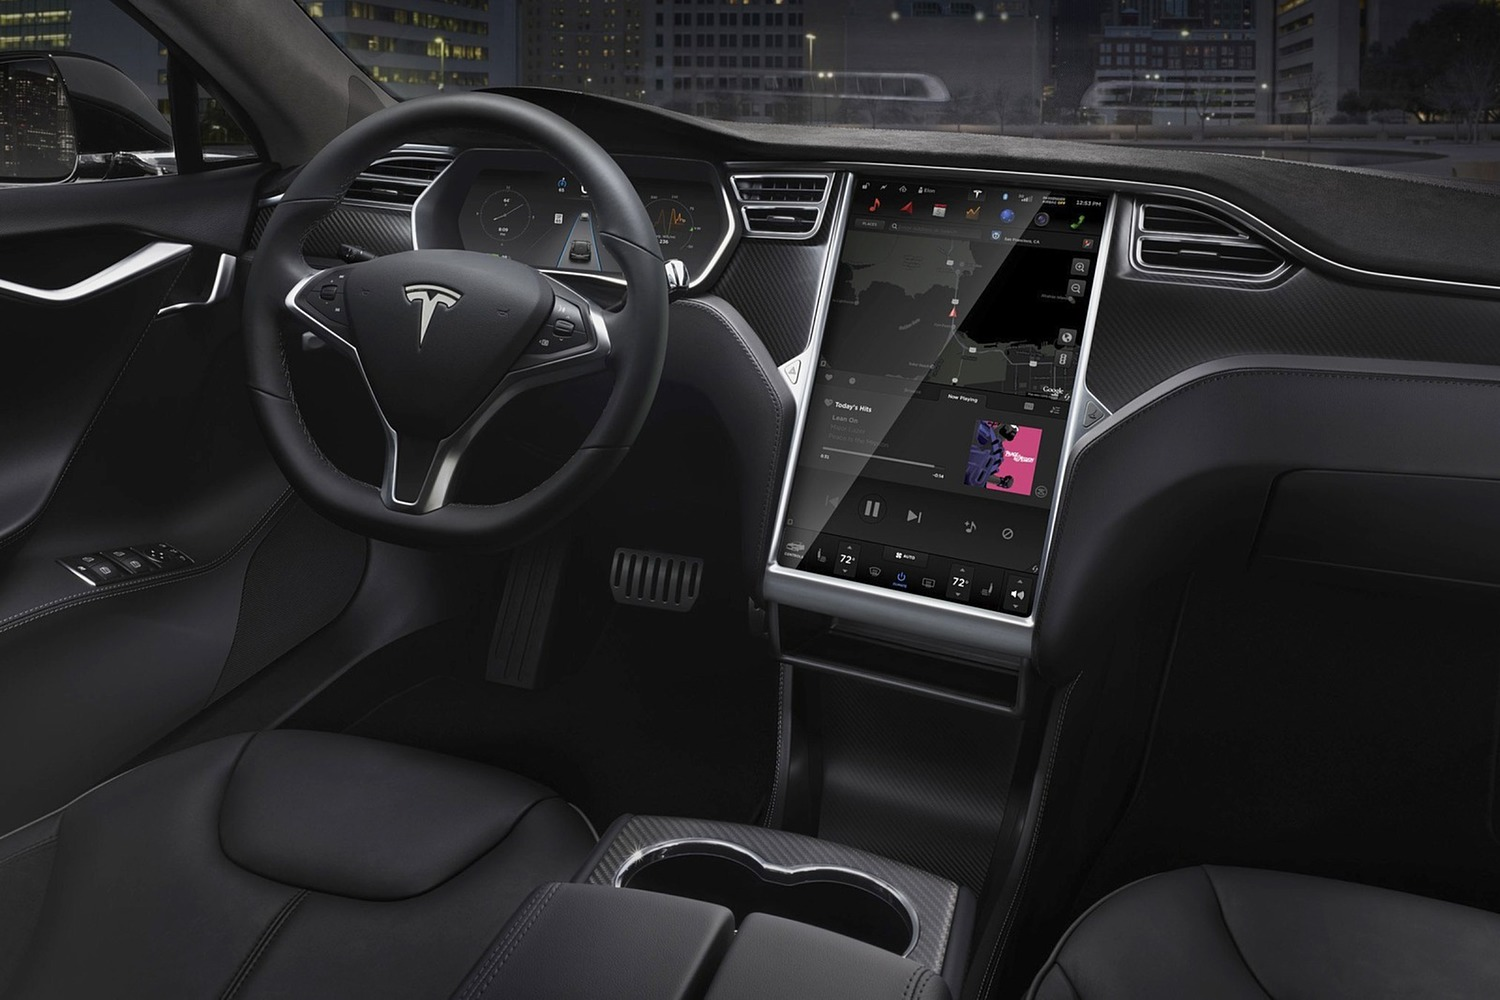 Tesla Model S 90D Sedan Dashboard (2016 model year shown)